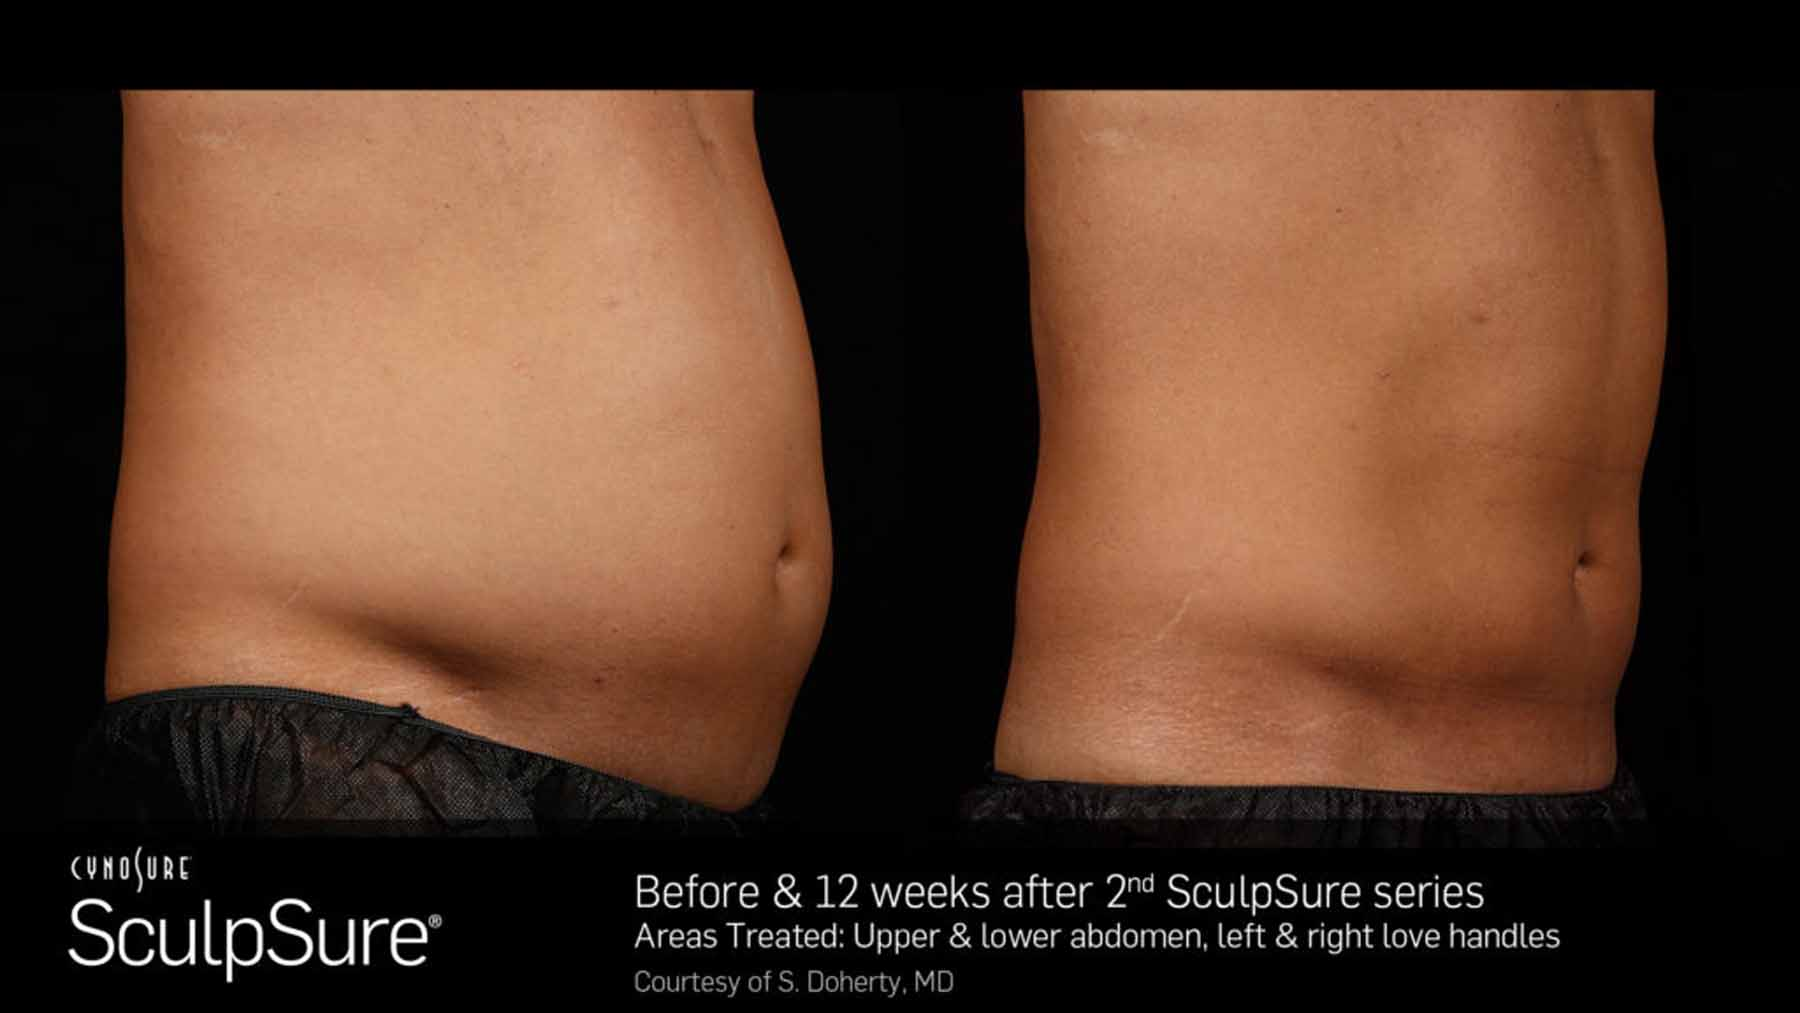 Before and After image of abdomen treated with SculpSure treatment.